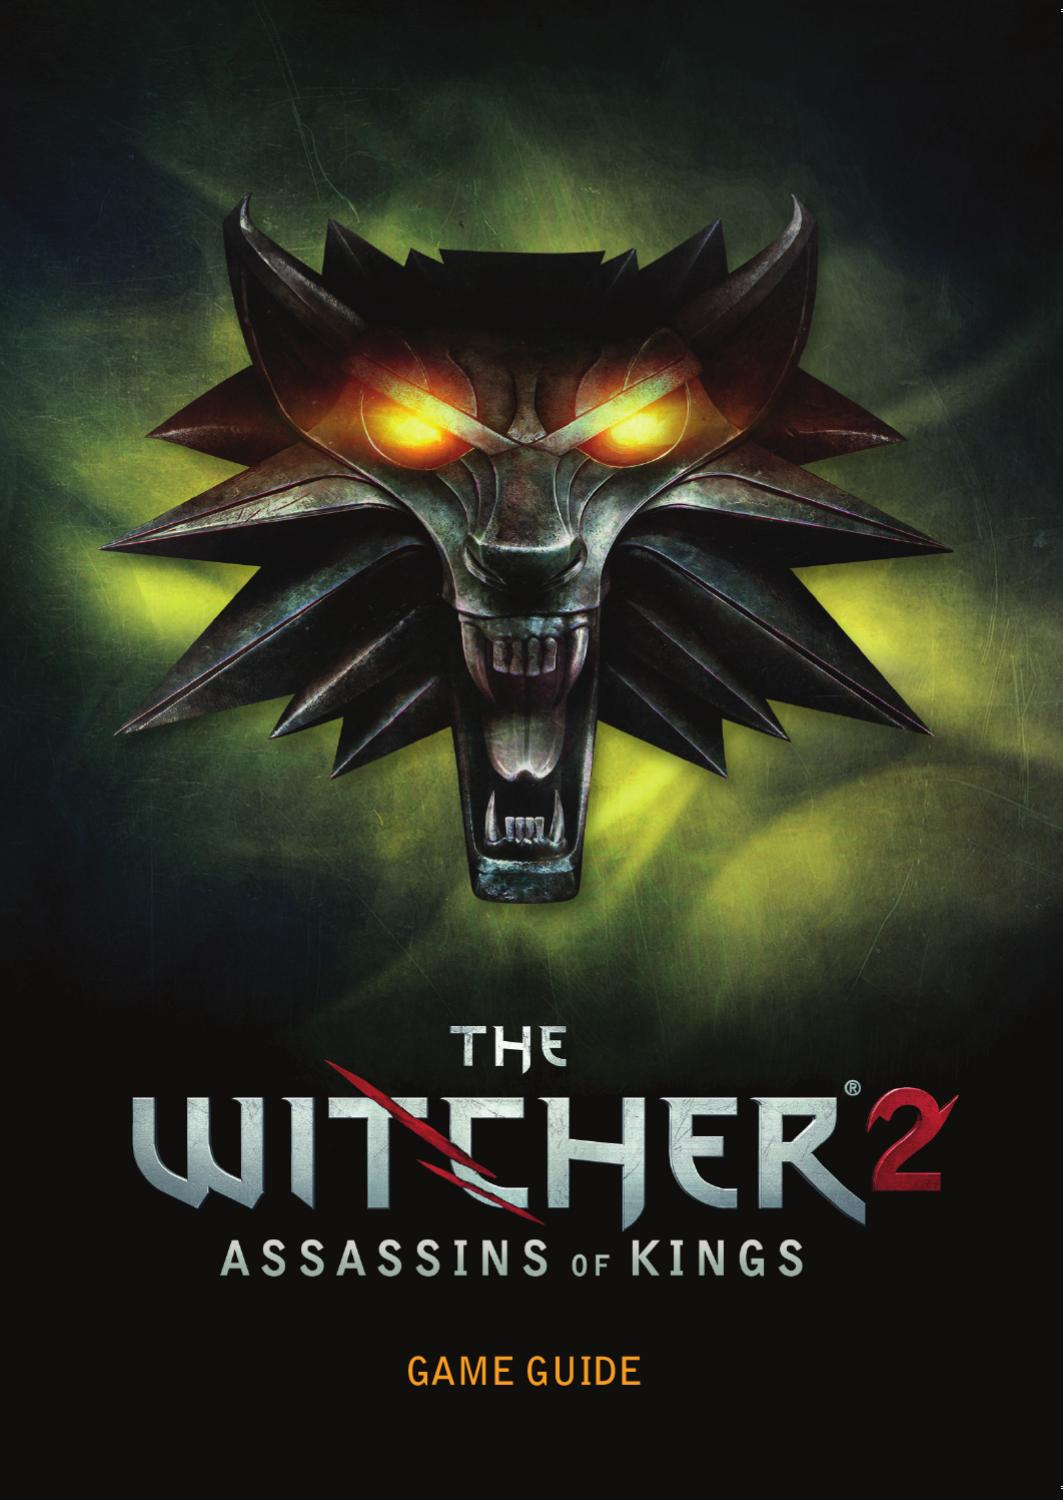 The Witcher 2 Game Guide By Kyle Green Issuu